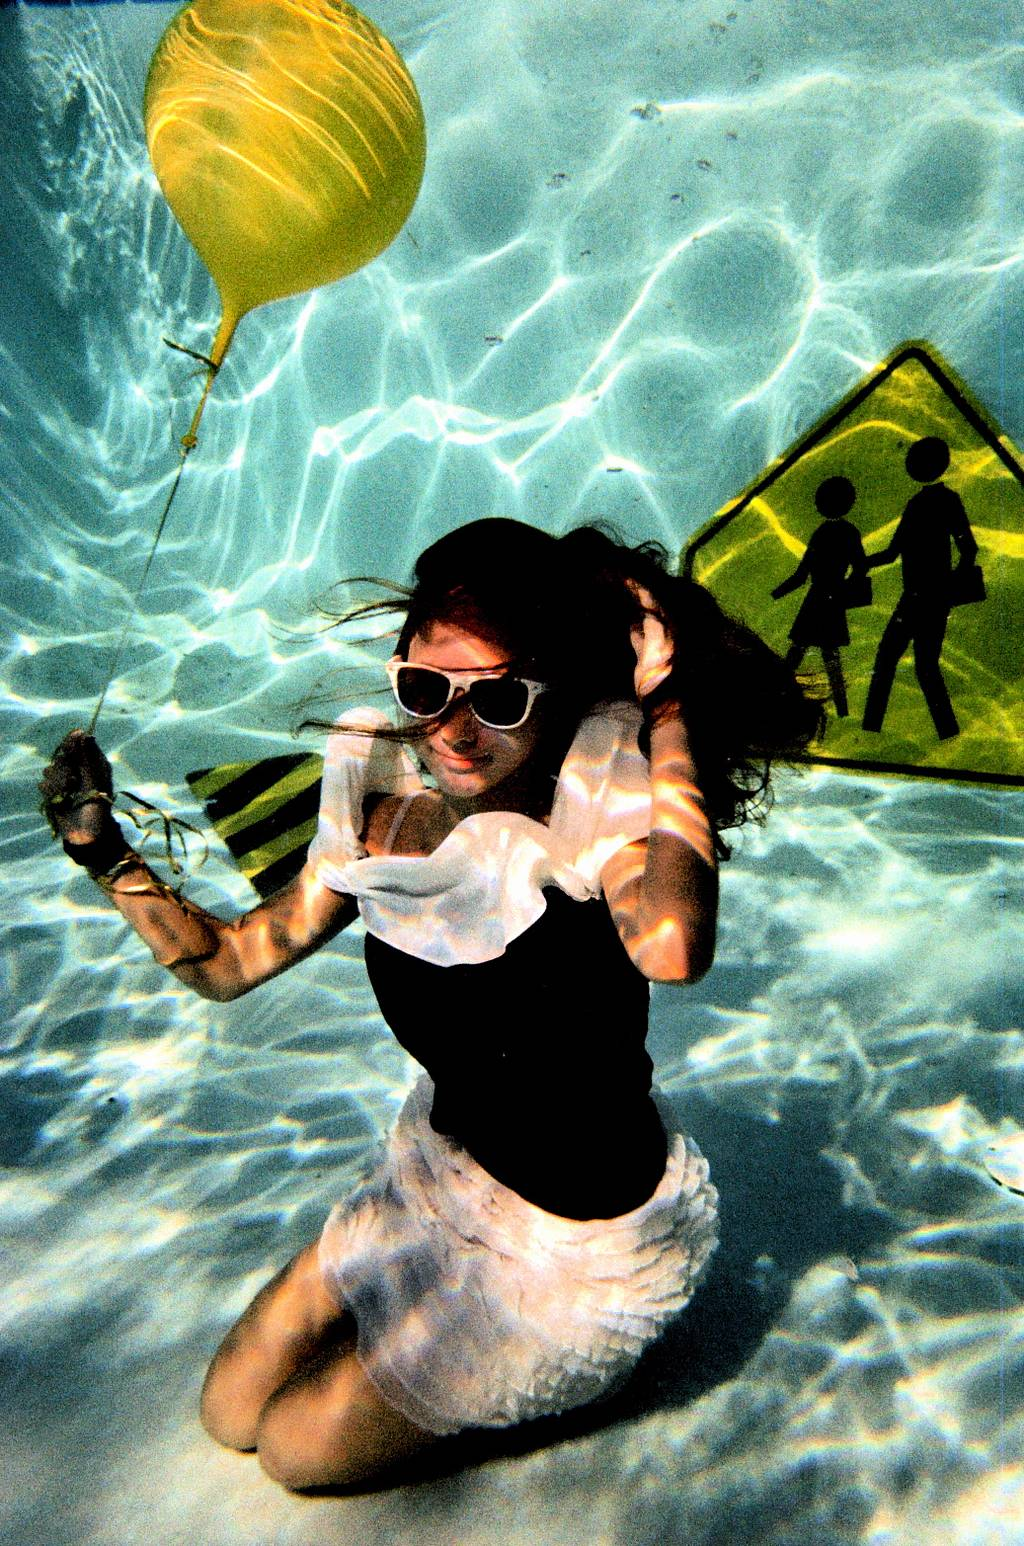 Analogue Goes Underwater!